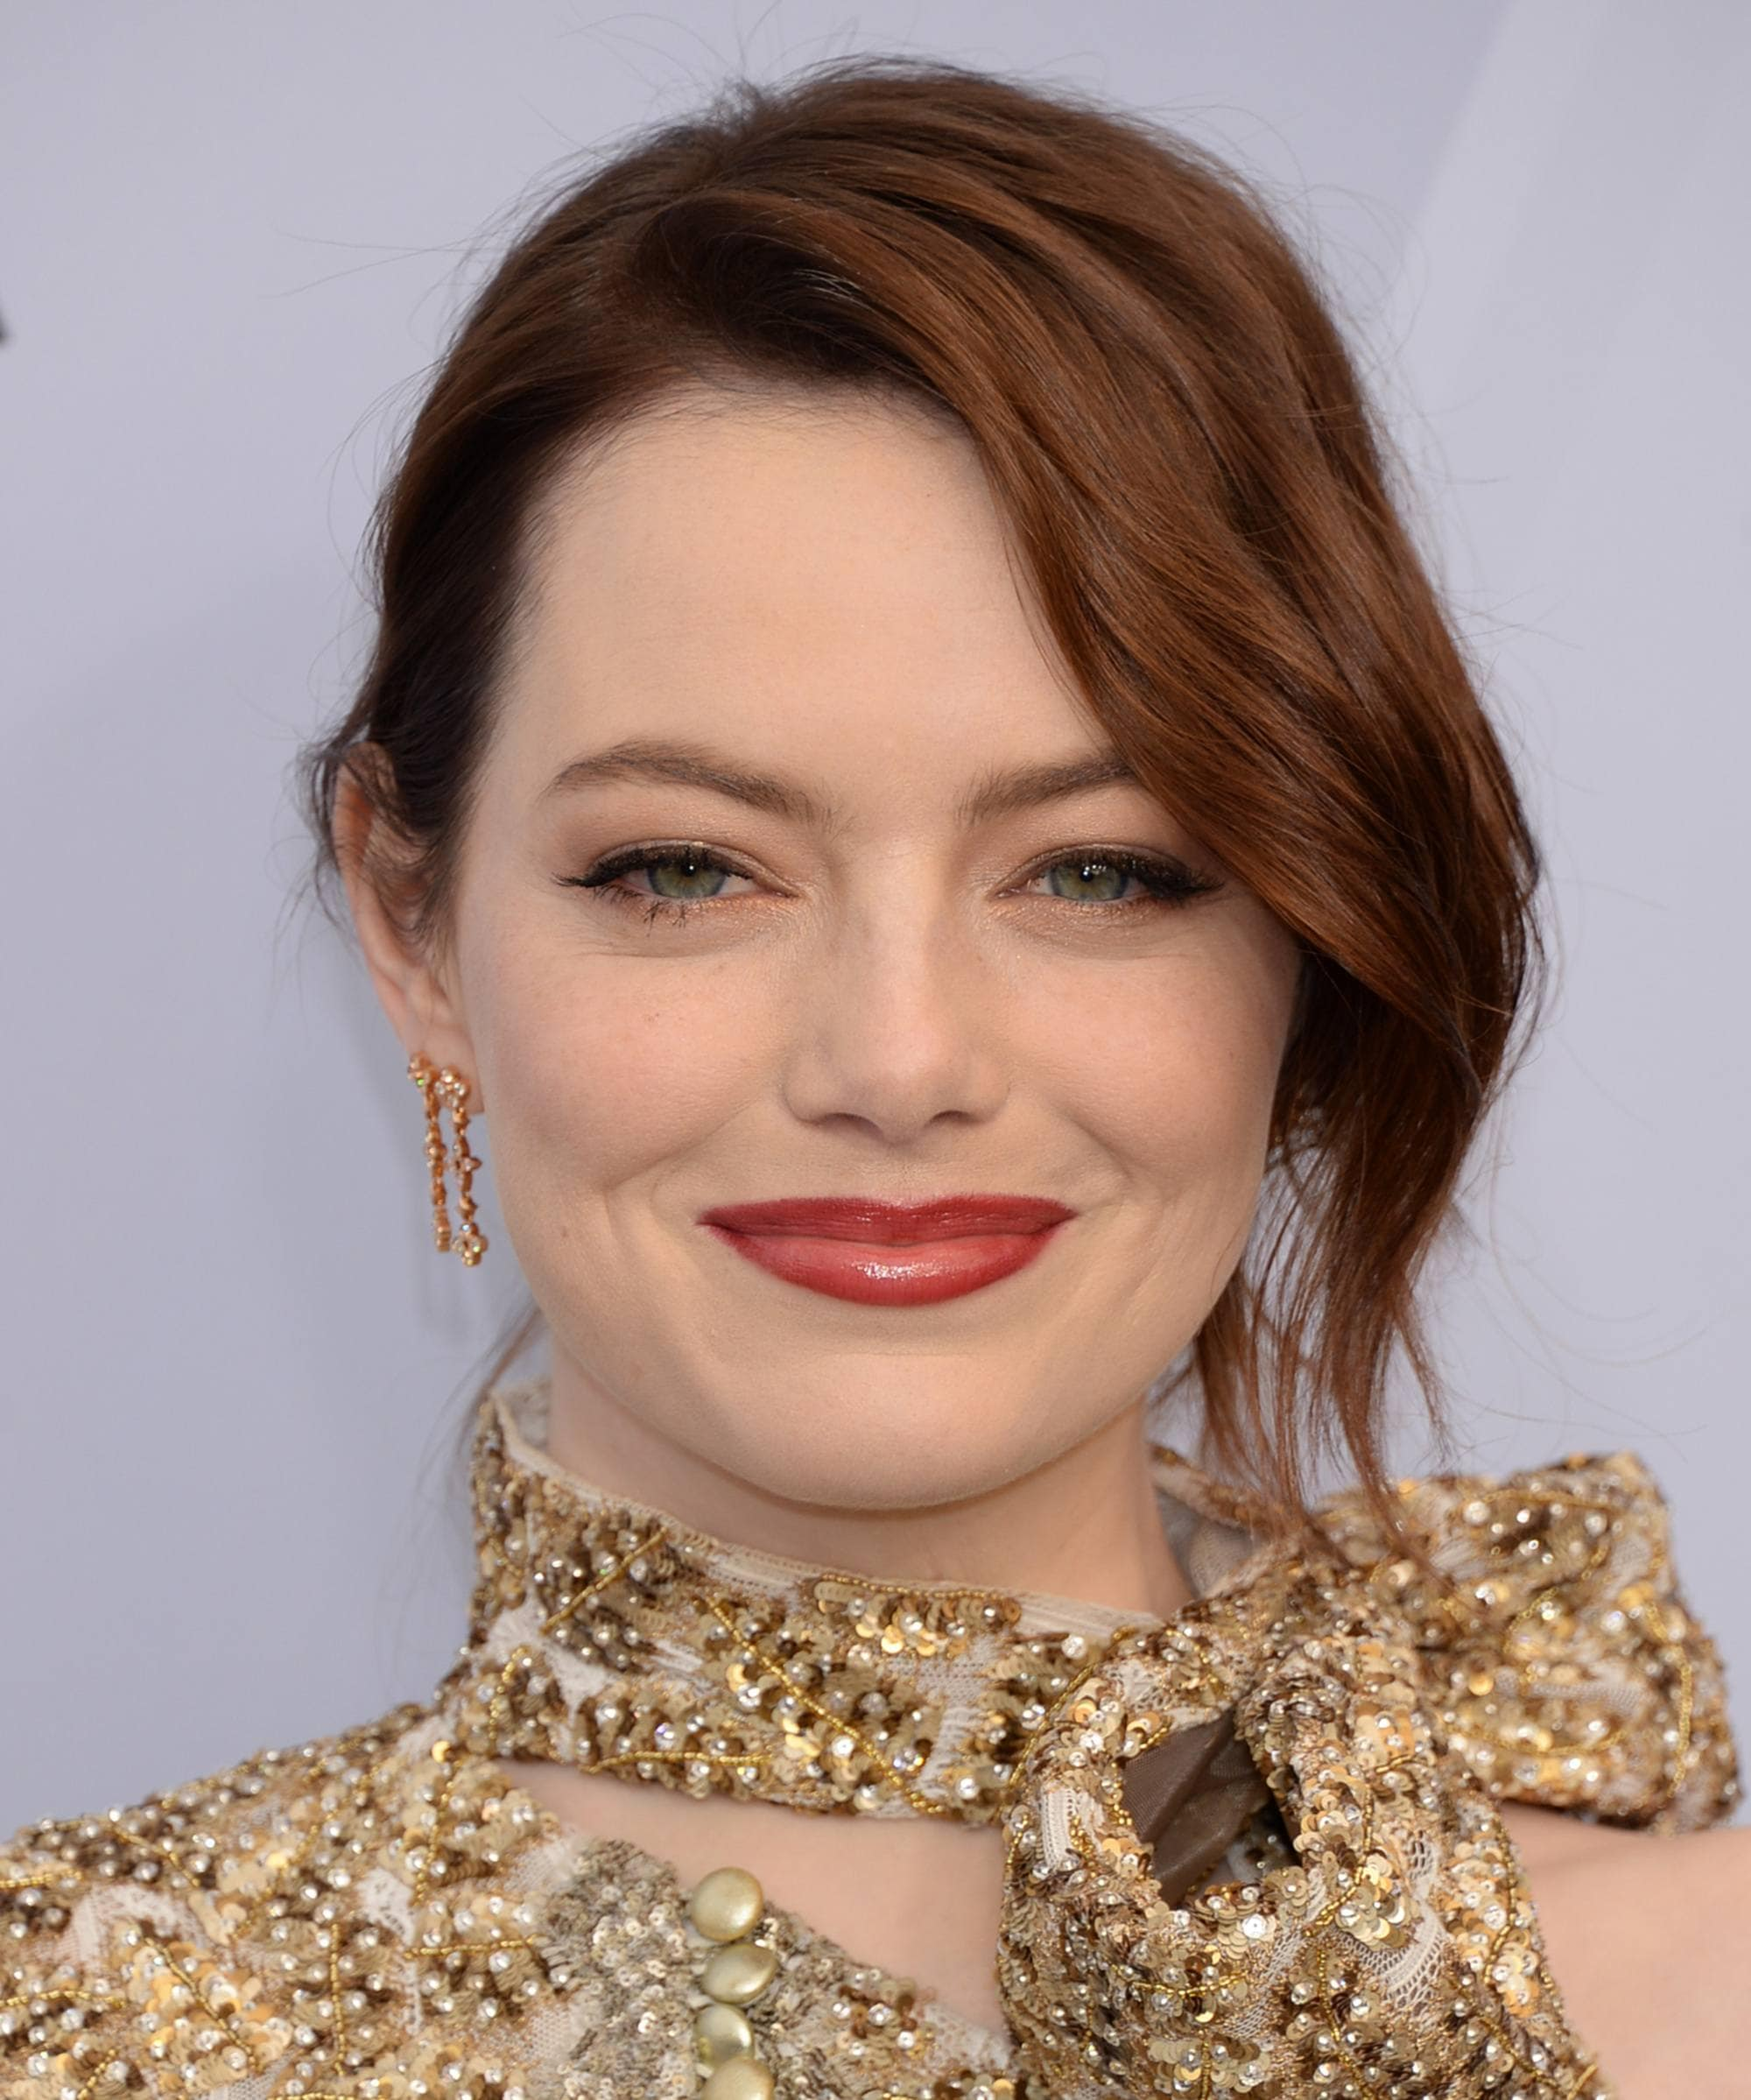 Famous redheads: Emma Stone with dark red wavy hair styled in a updo with a loose long side fringe wearing a gold high neck dress.